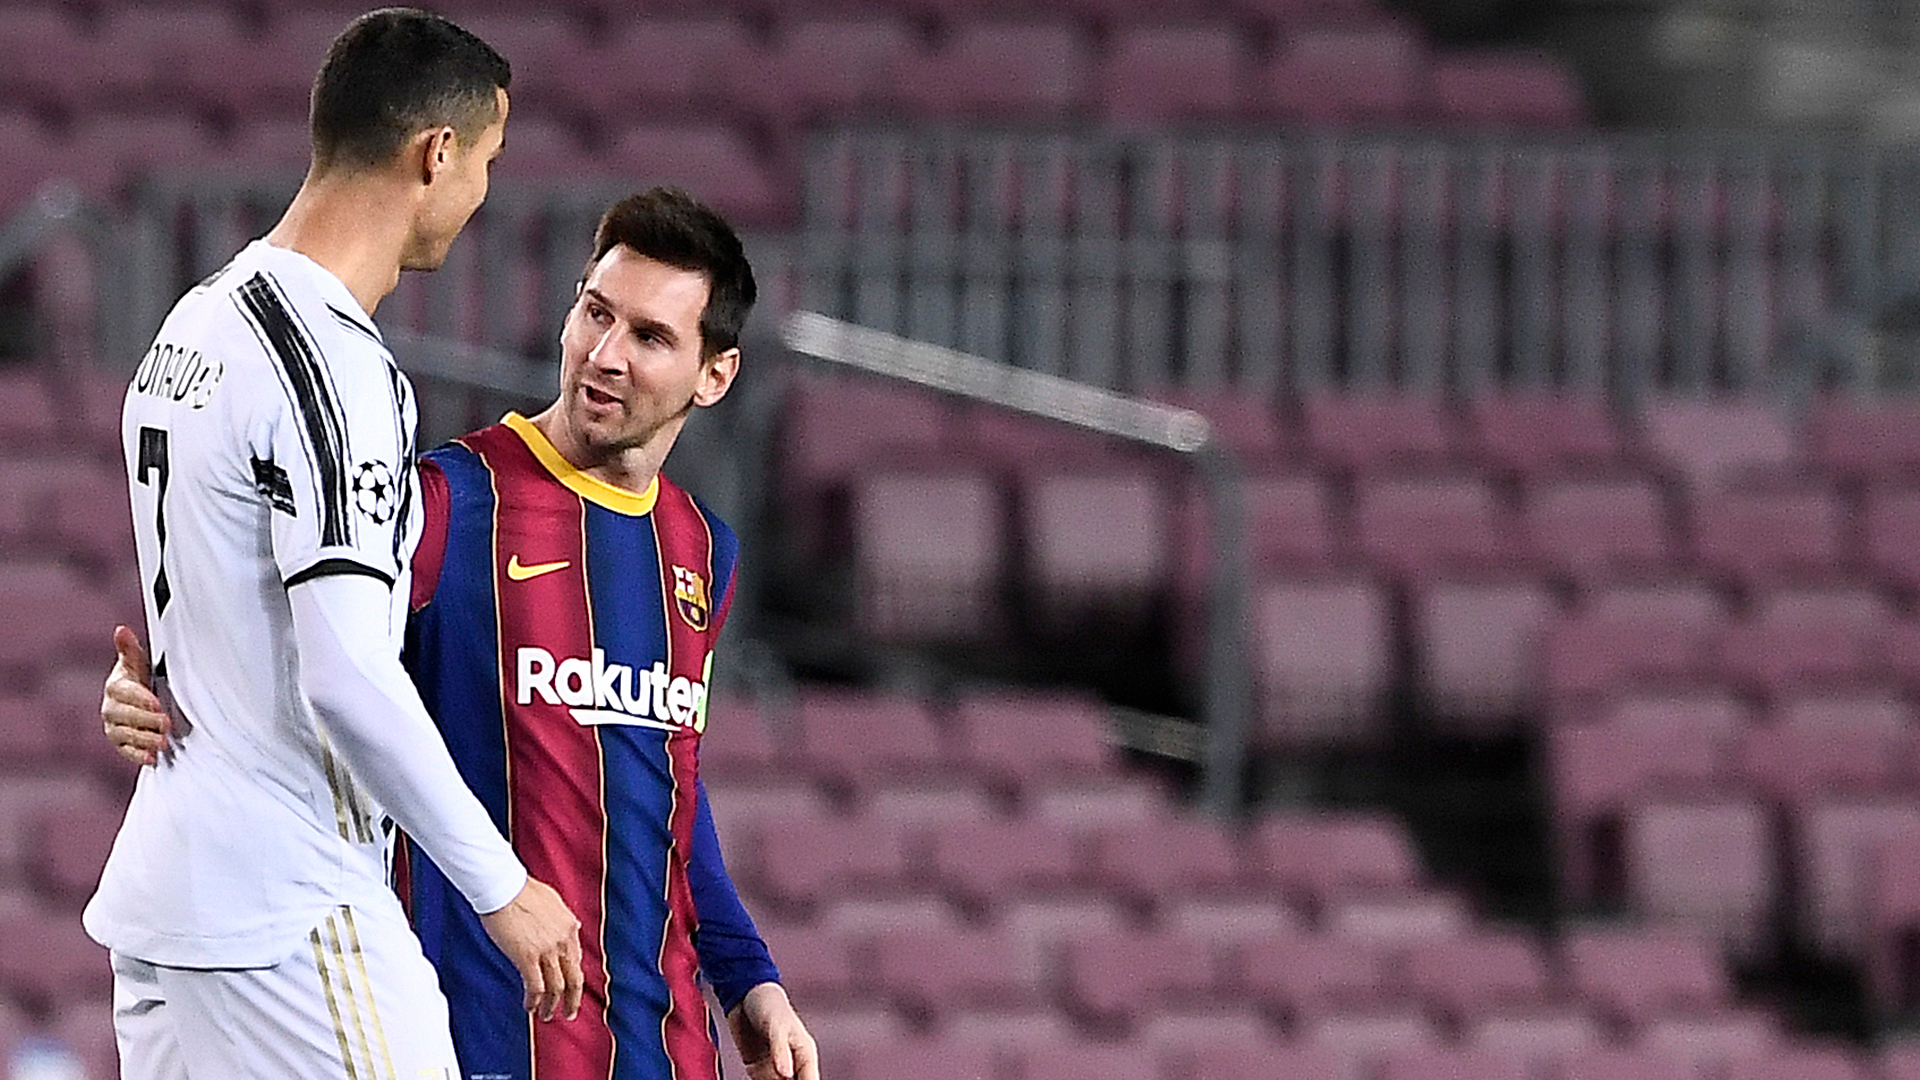 'Ronaldo stands out in football' - Barcelona star Messi salutes long-time rival